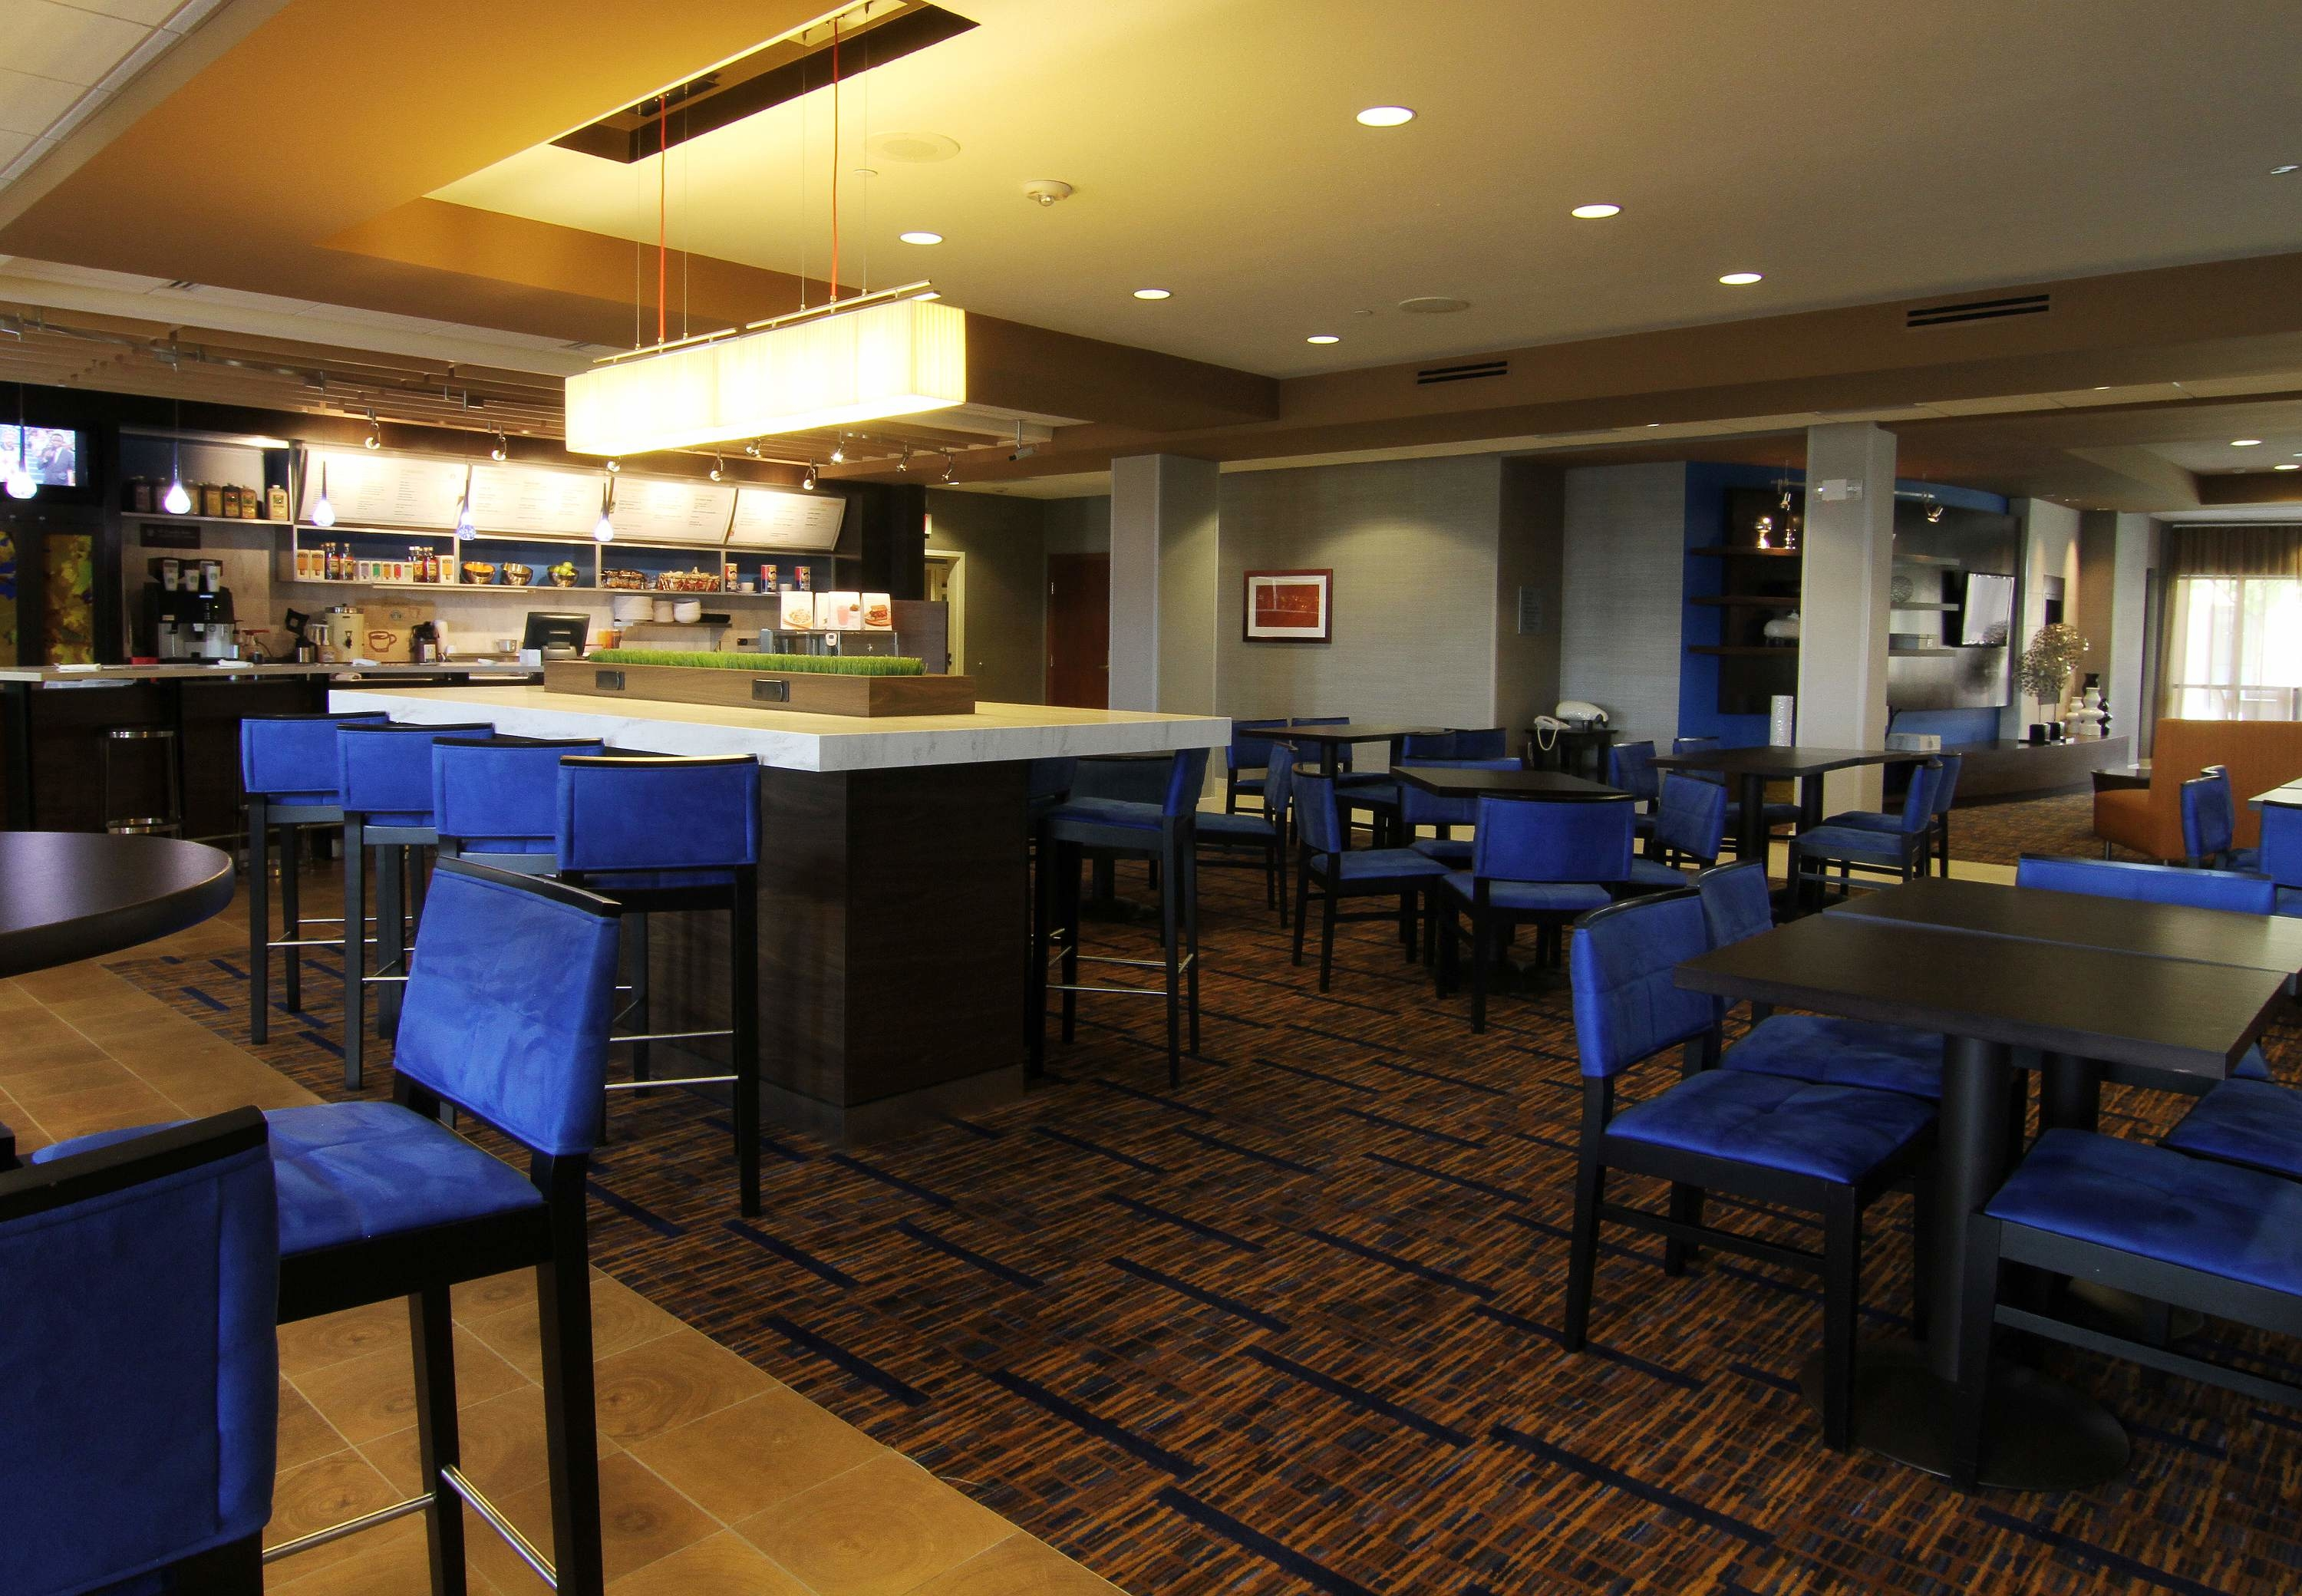 Courtyard by Marriott Fargo Moorhead, MN image 9